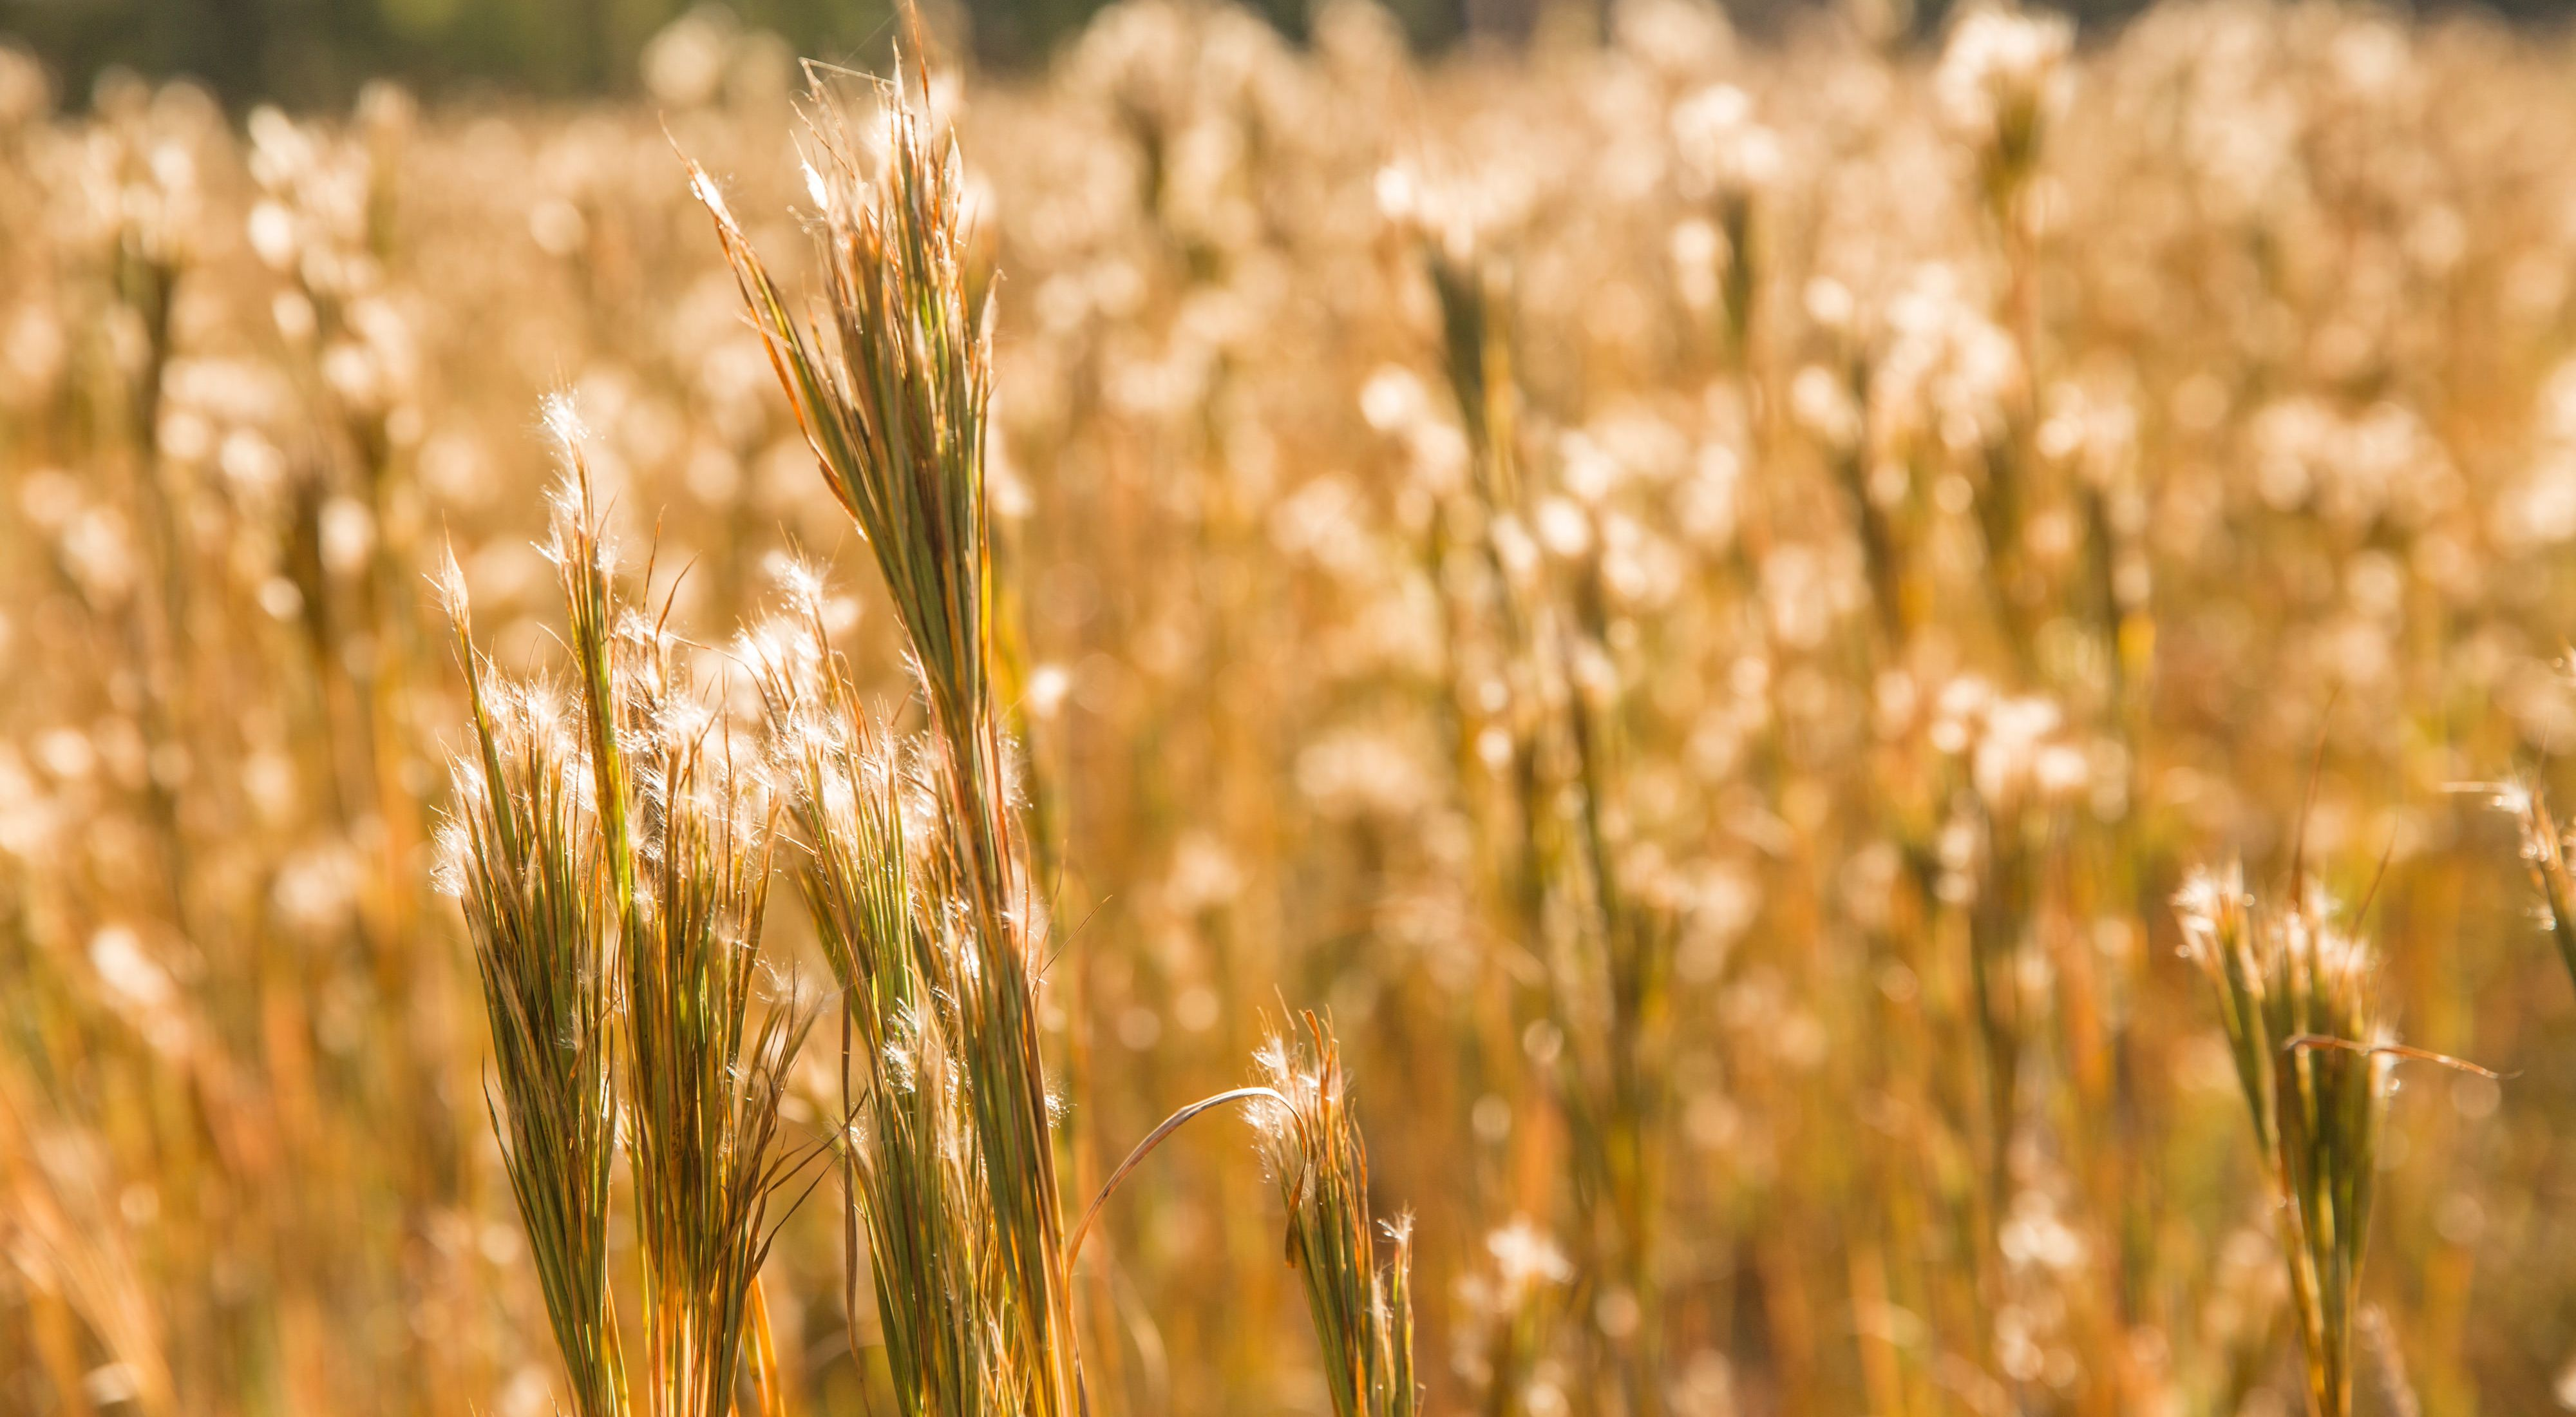 A field of tall grass with fuzzy seeds.